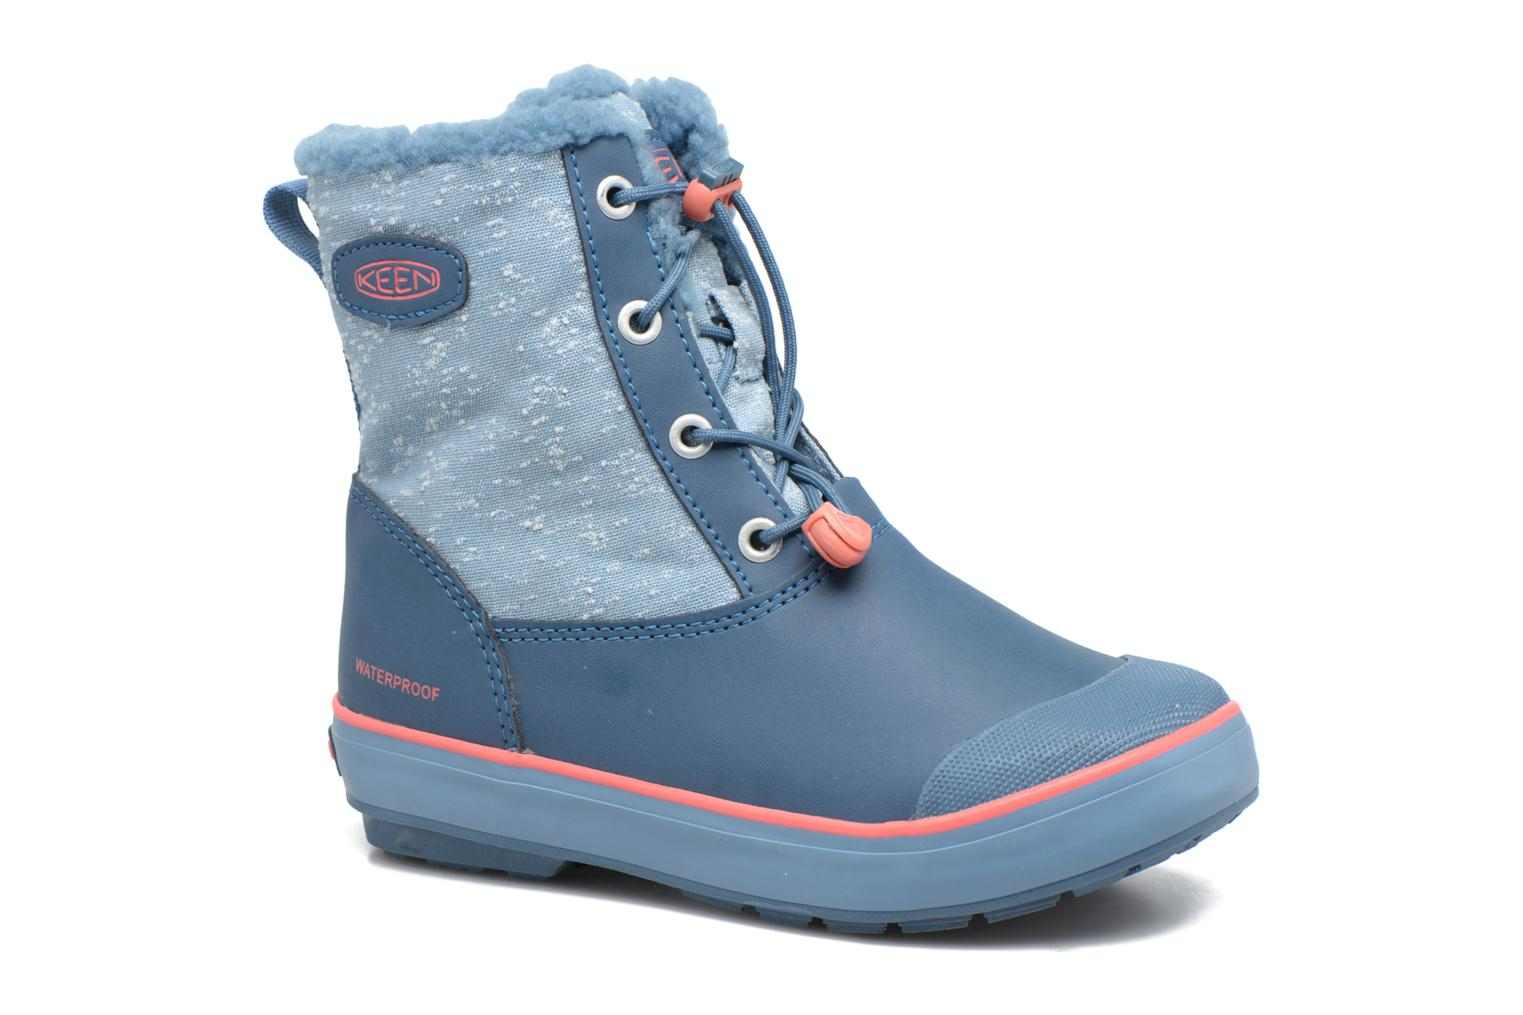 Elsa Boot WP by KeenRebajas - 20%